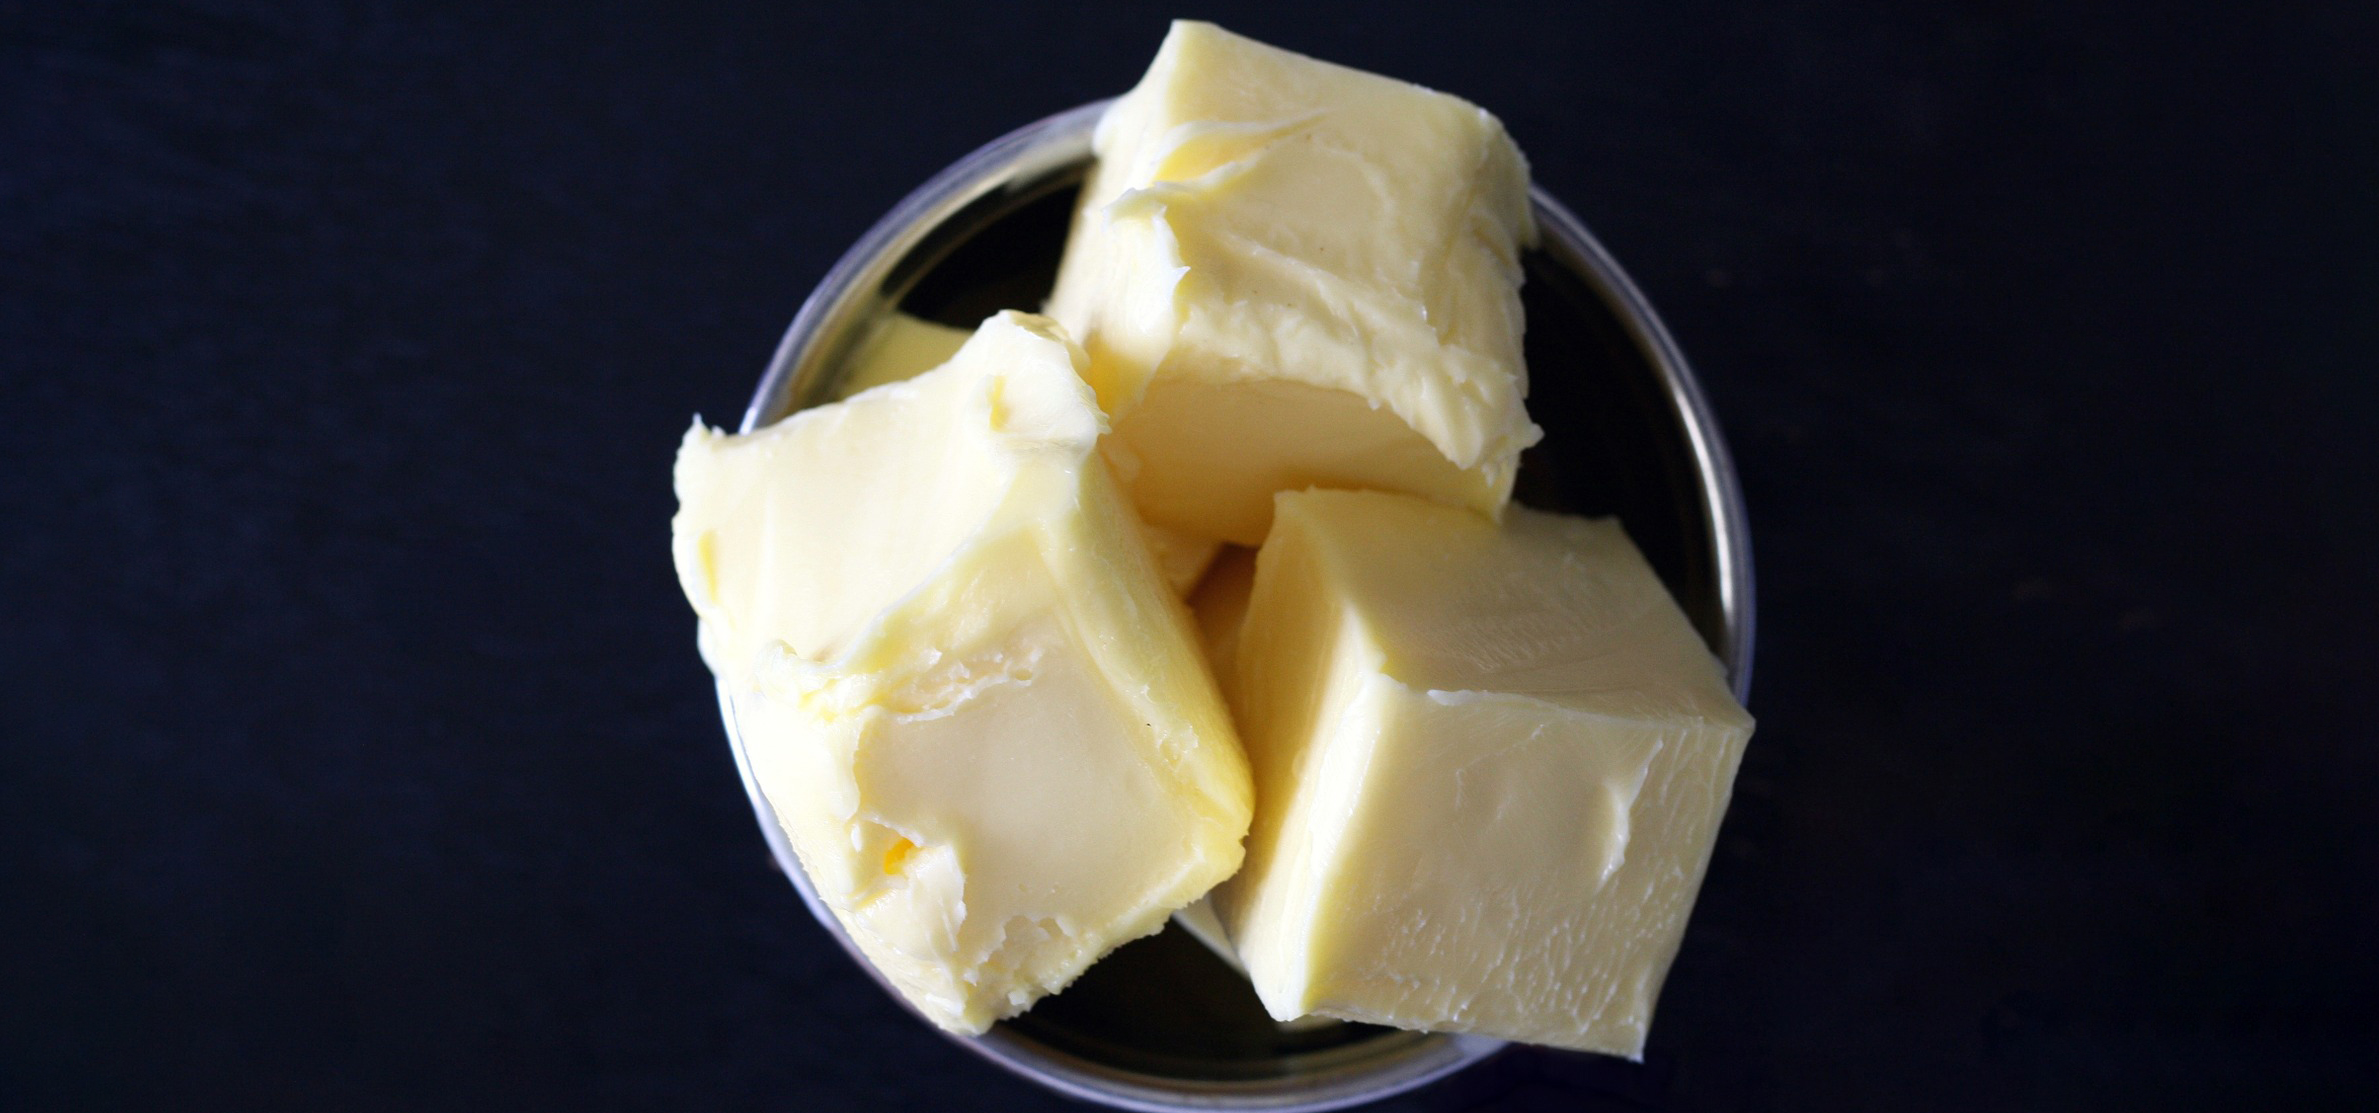 Cubes of butter against black background.